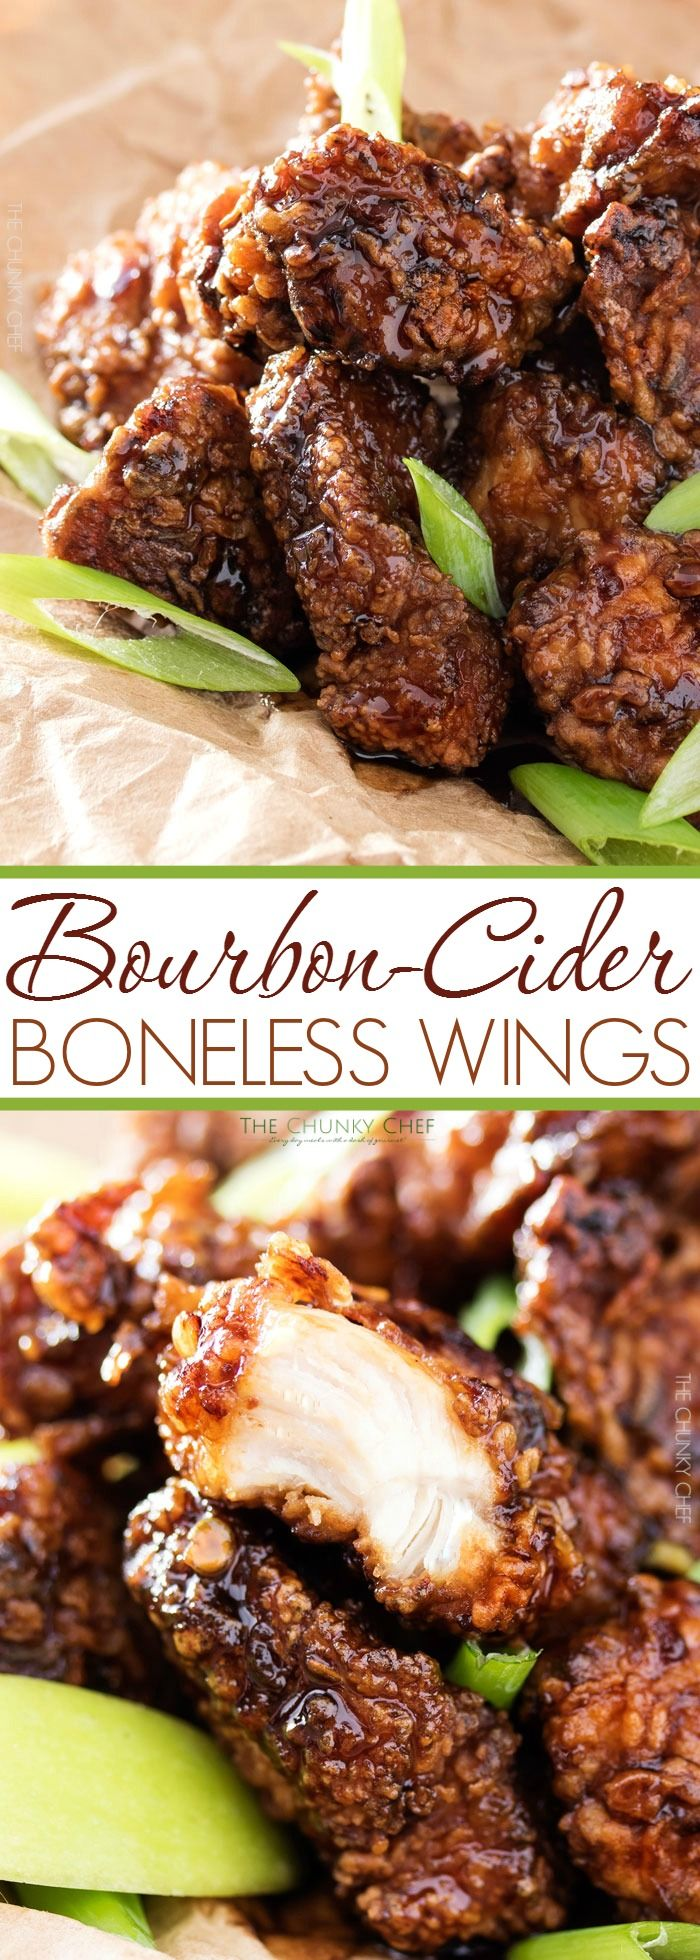 Bourbon Cider Boneless Wings | The ultimate boneless wings, marinated in buttermilk, fried until crispy, and tossed in a mouthwatering spicy bourbon apple cider sauce! | http://thechunkychef.com